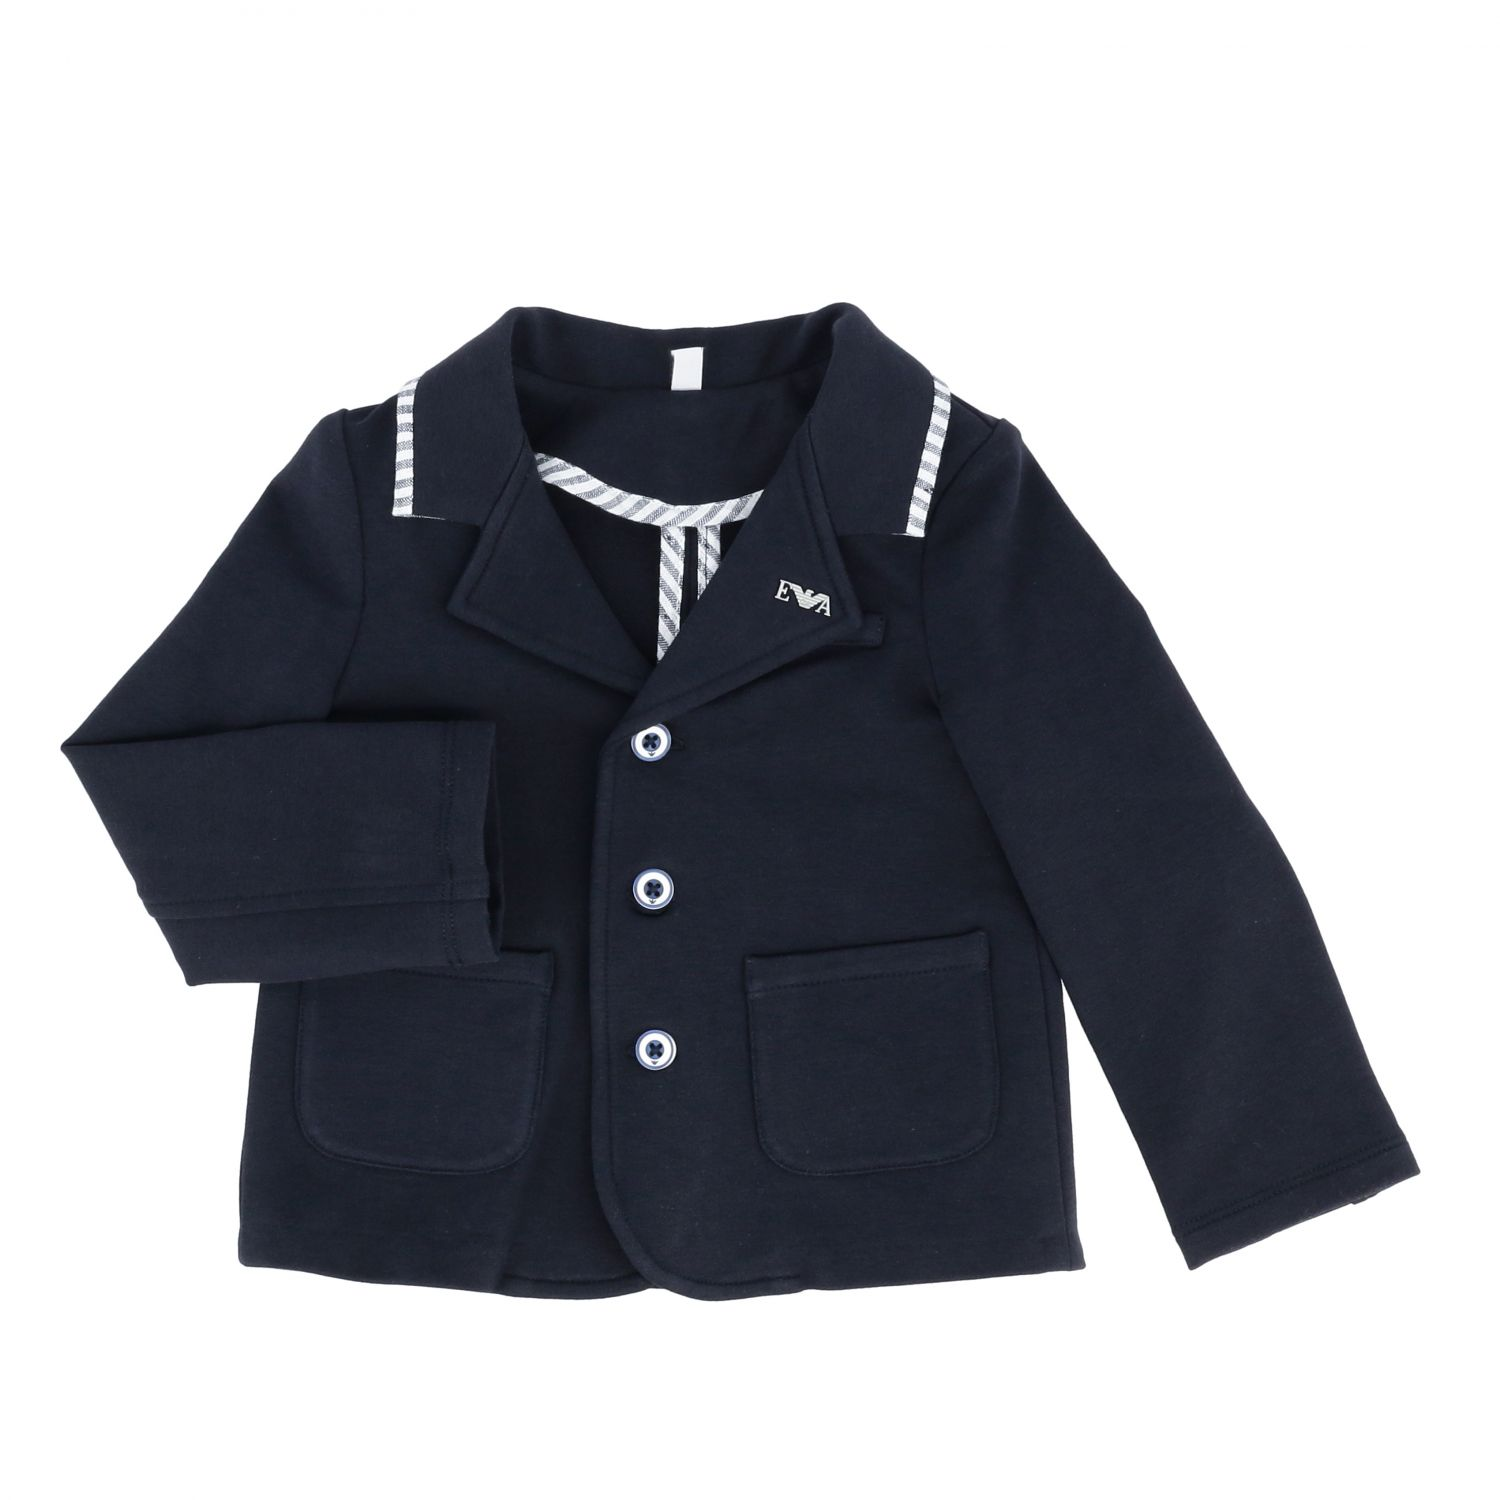 Emporio Armani single-breasted jacket blue 1